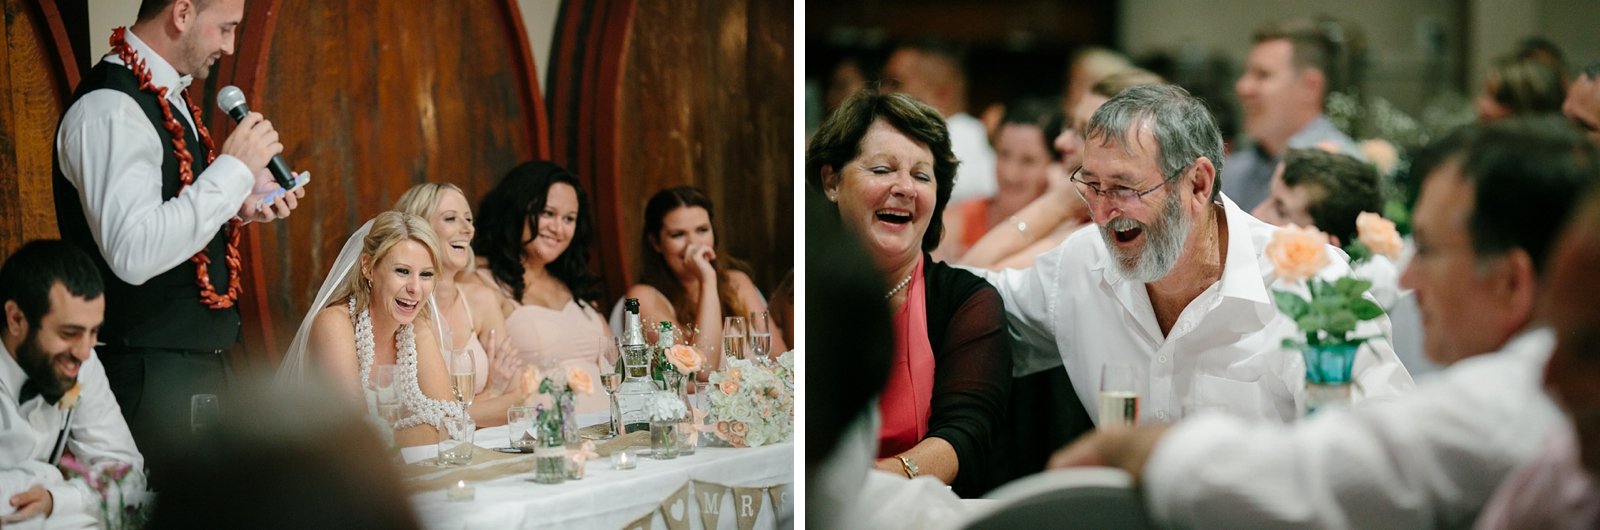 ConnorLaura_Auckland Wedding Photographer_Patty Lagera_0103.jpg